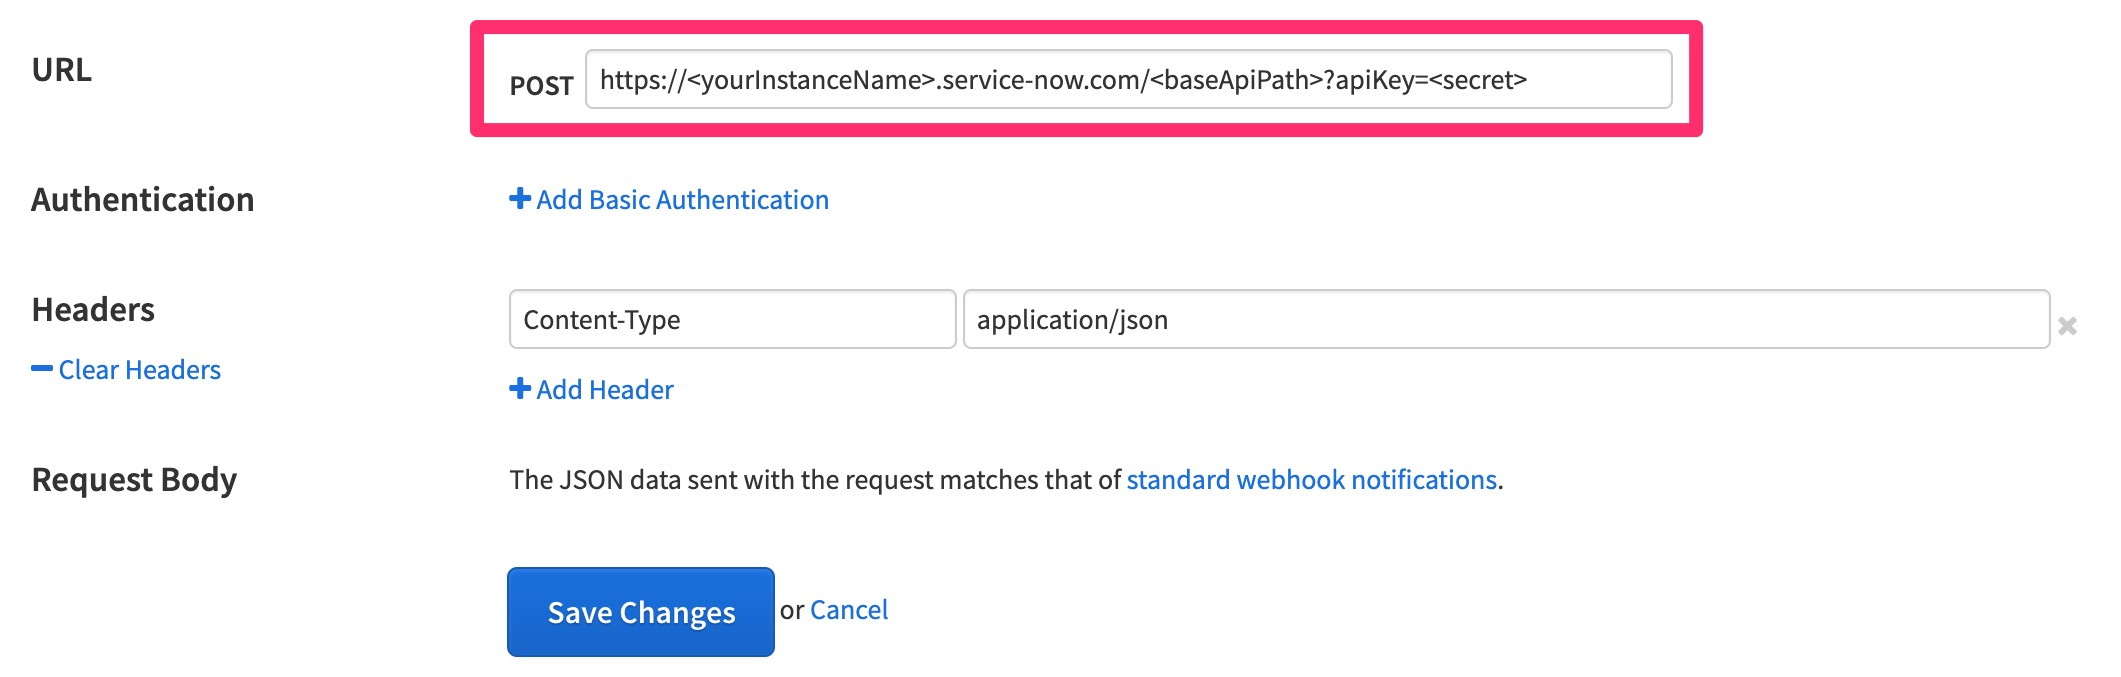 The Runscope logged in page for setting up a new Advanced Webhooks integration, highlighting the URL field with the URL for our ServiceNow REST API created in the previous steps